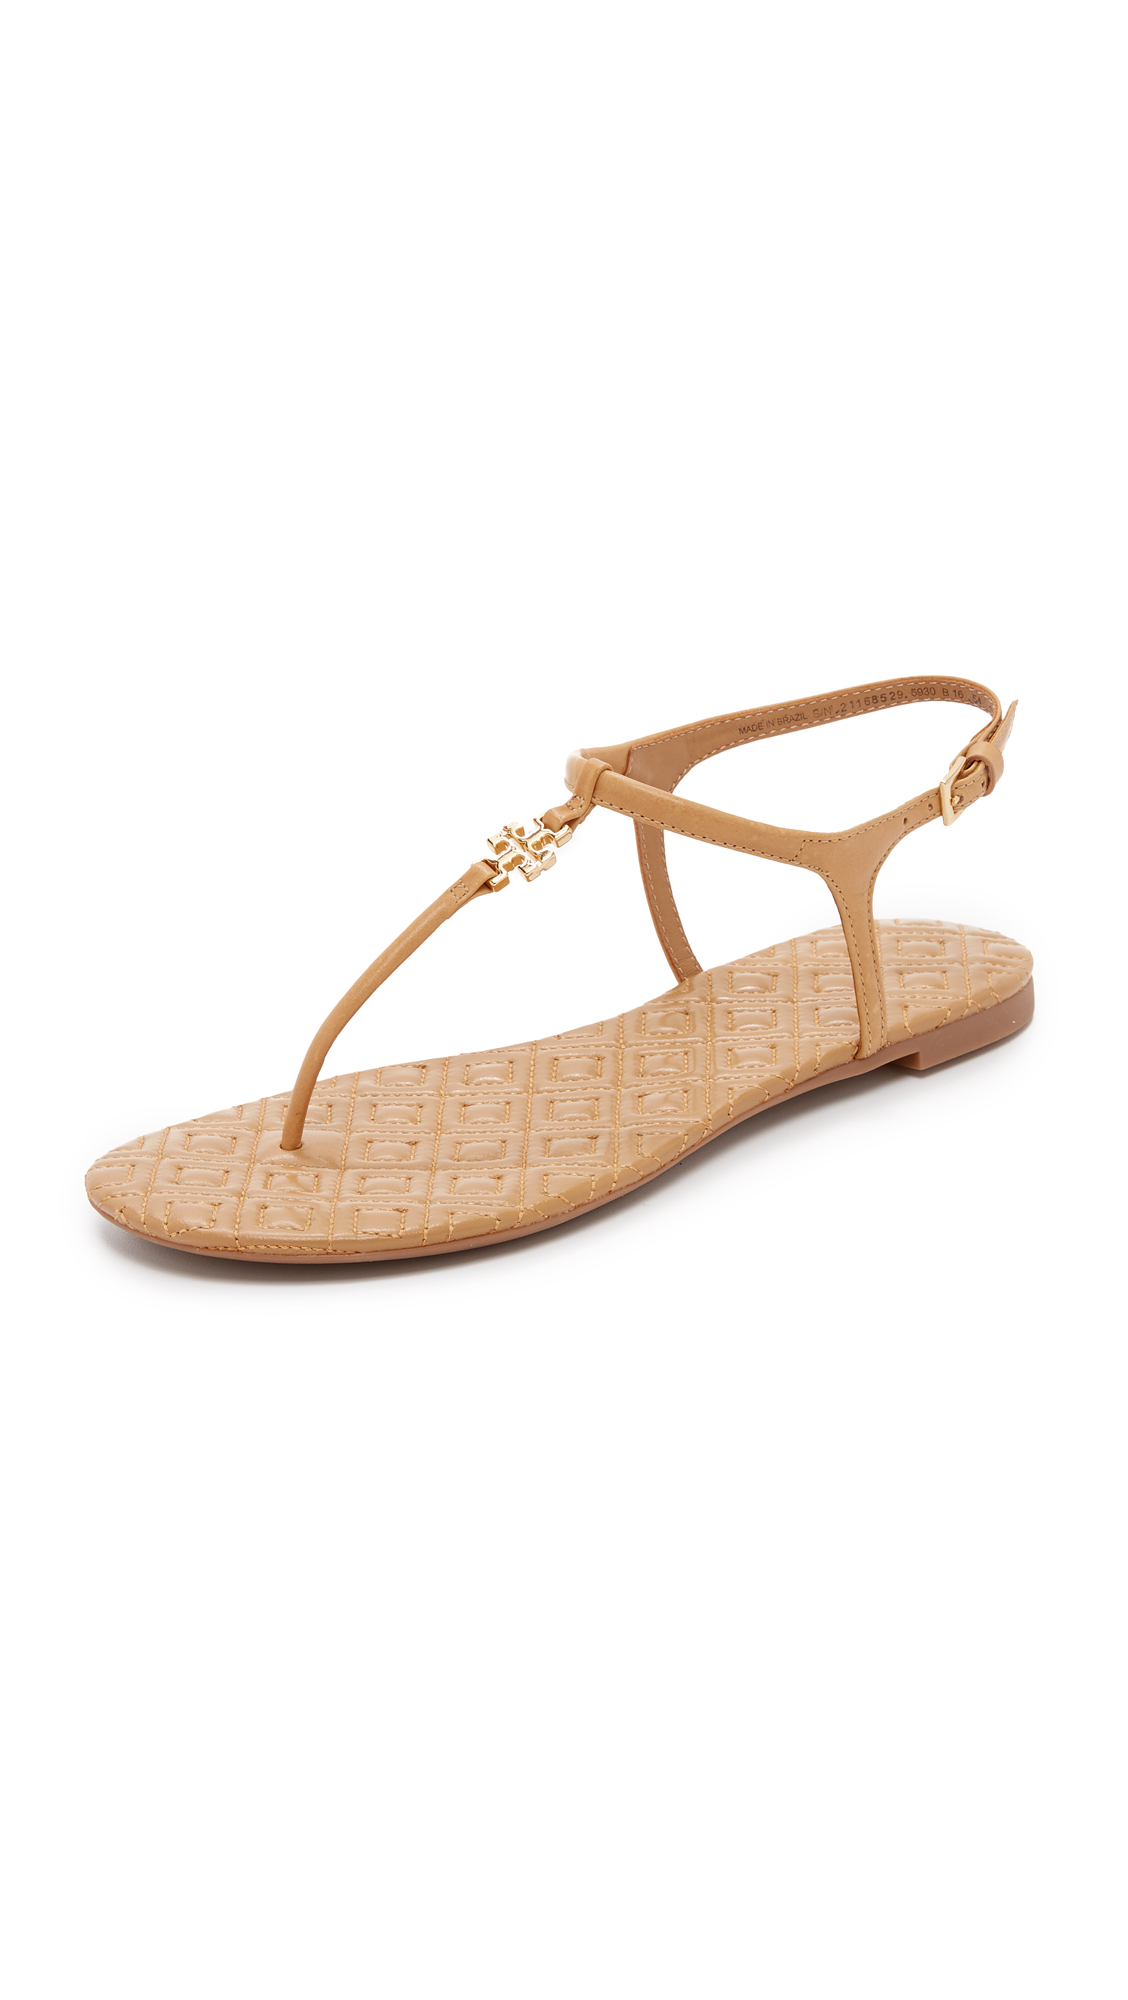 bceb5273c321 Lyst - Tory Burch Marion Quilted Sandals in Natural